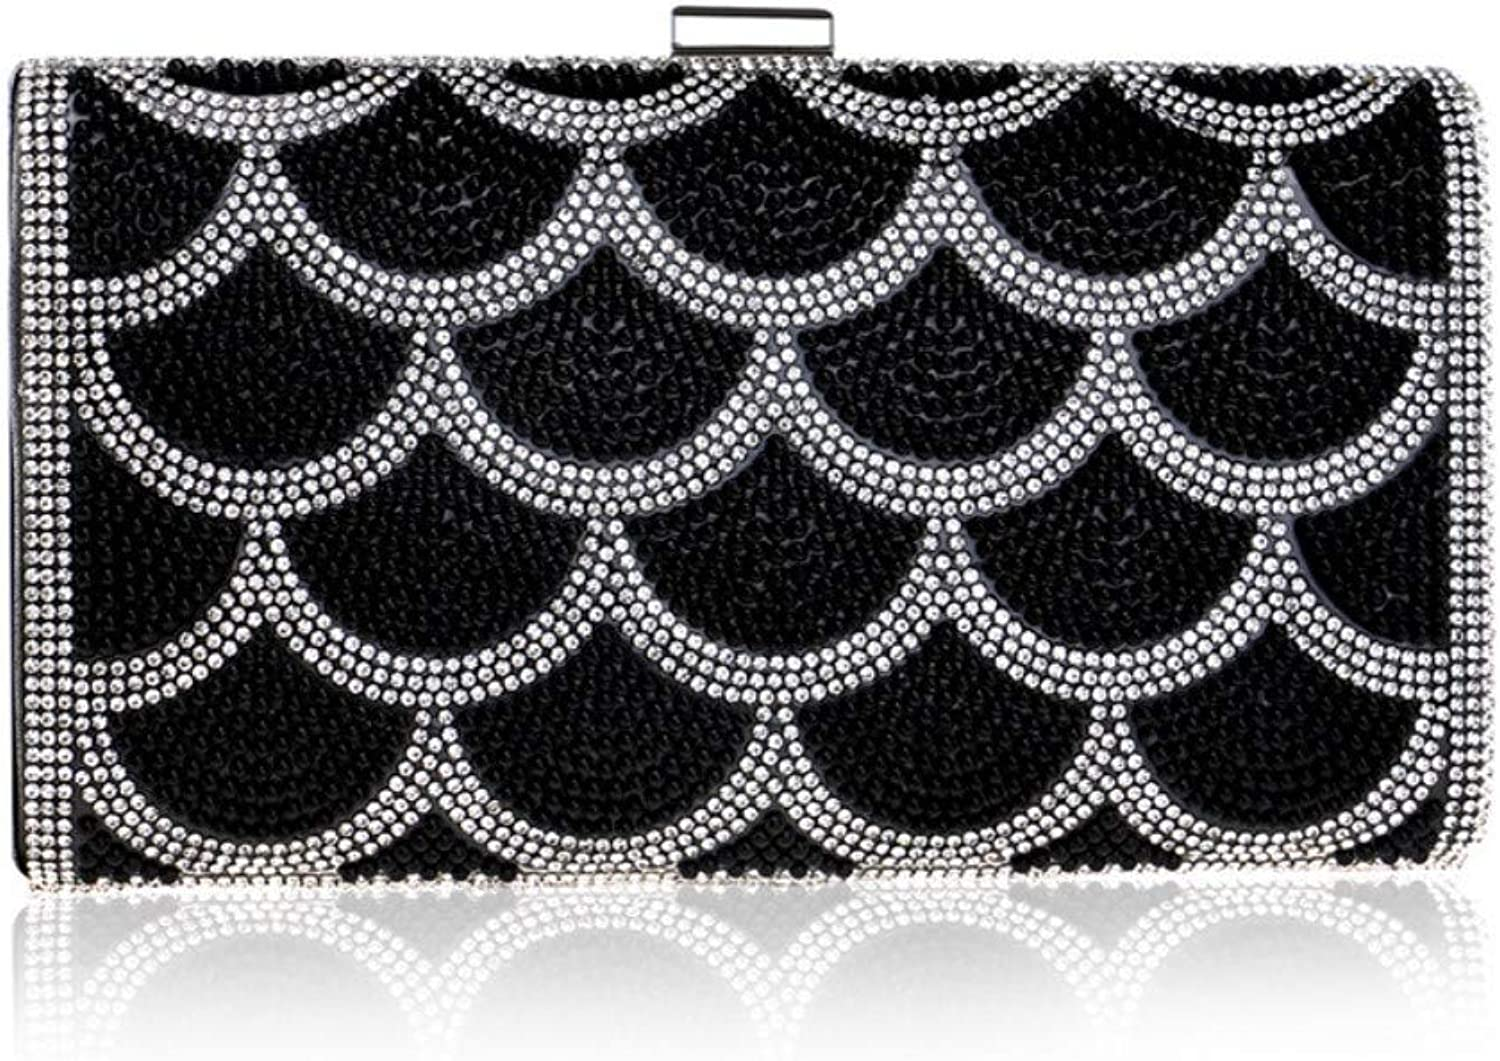 CLEBAO Pearls, Dinners, Parties, conferences, Nightclubs, Ladies, Ladies, Dresses, Evening Clutches